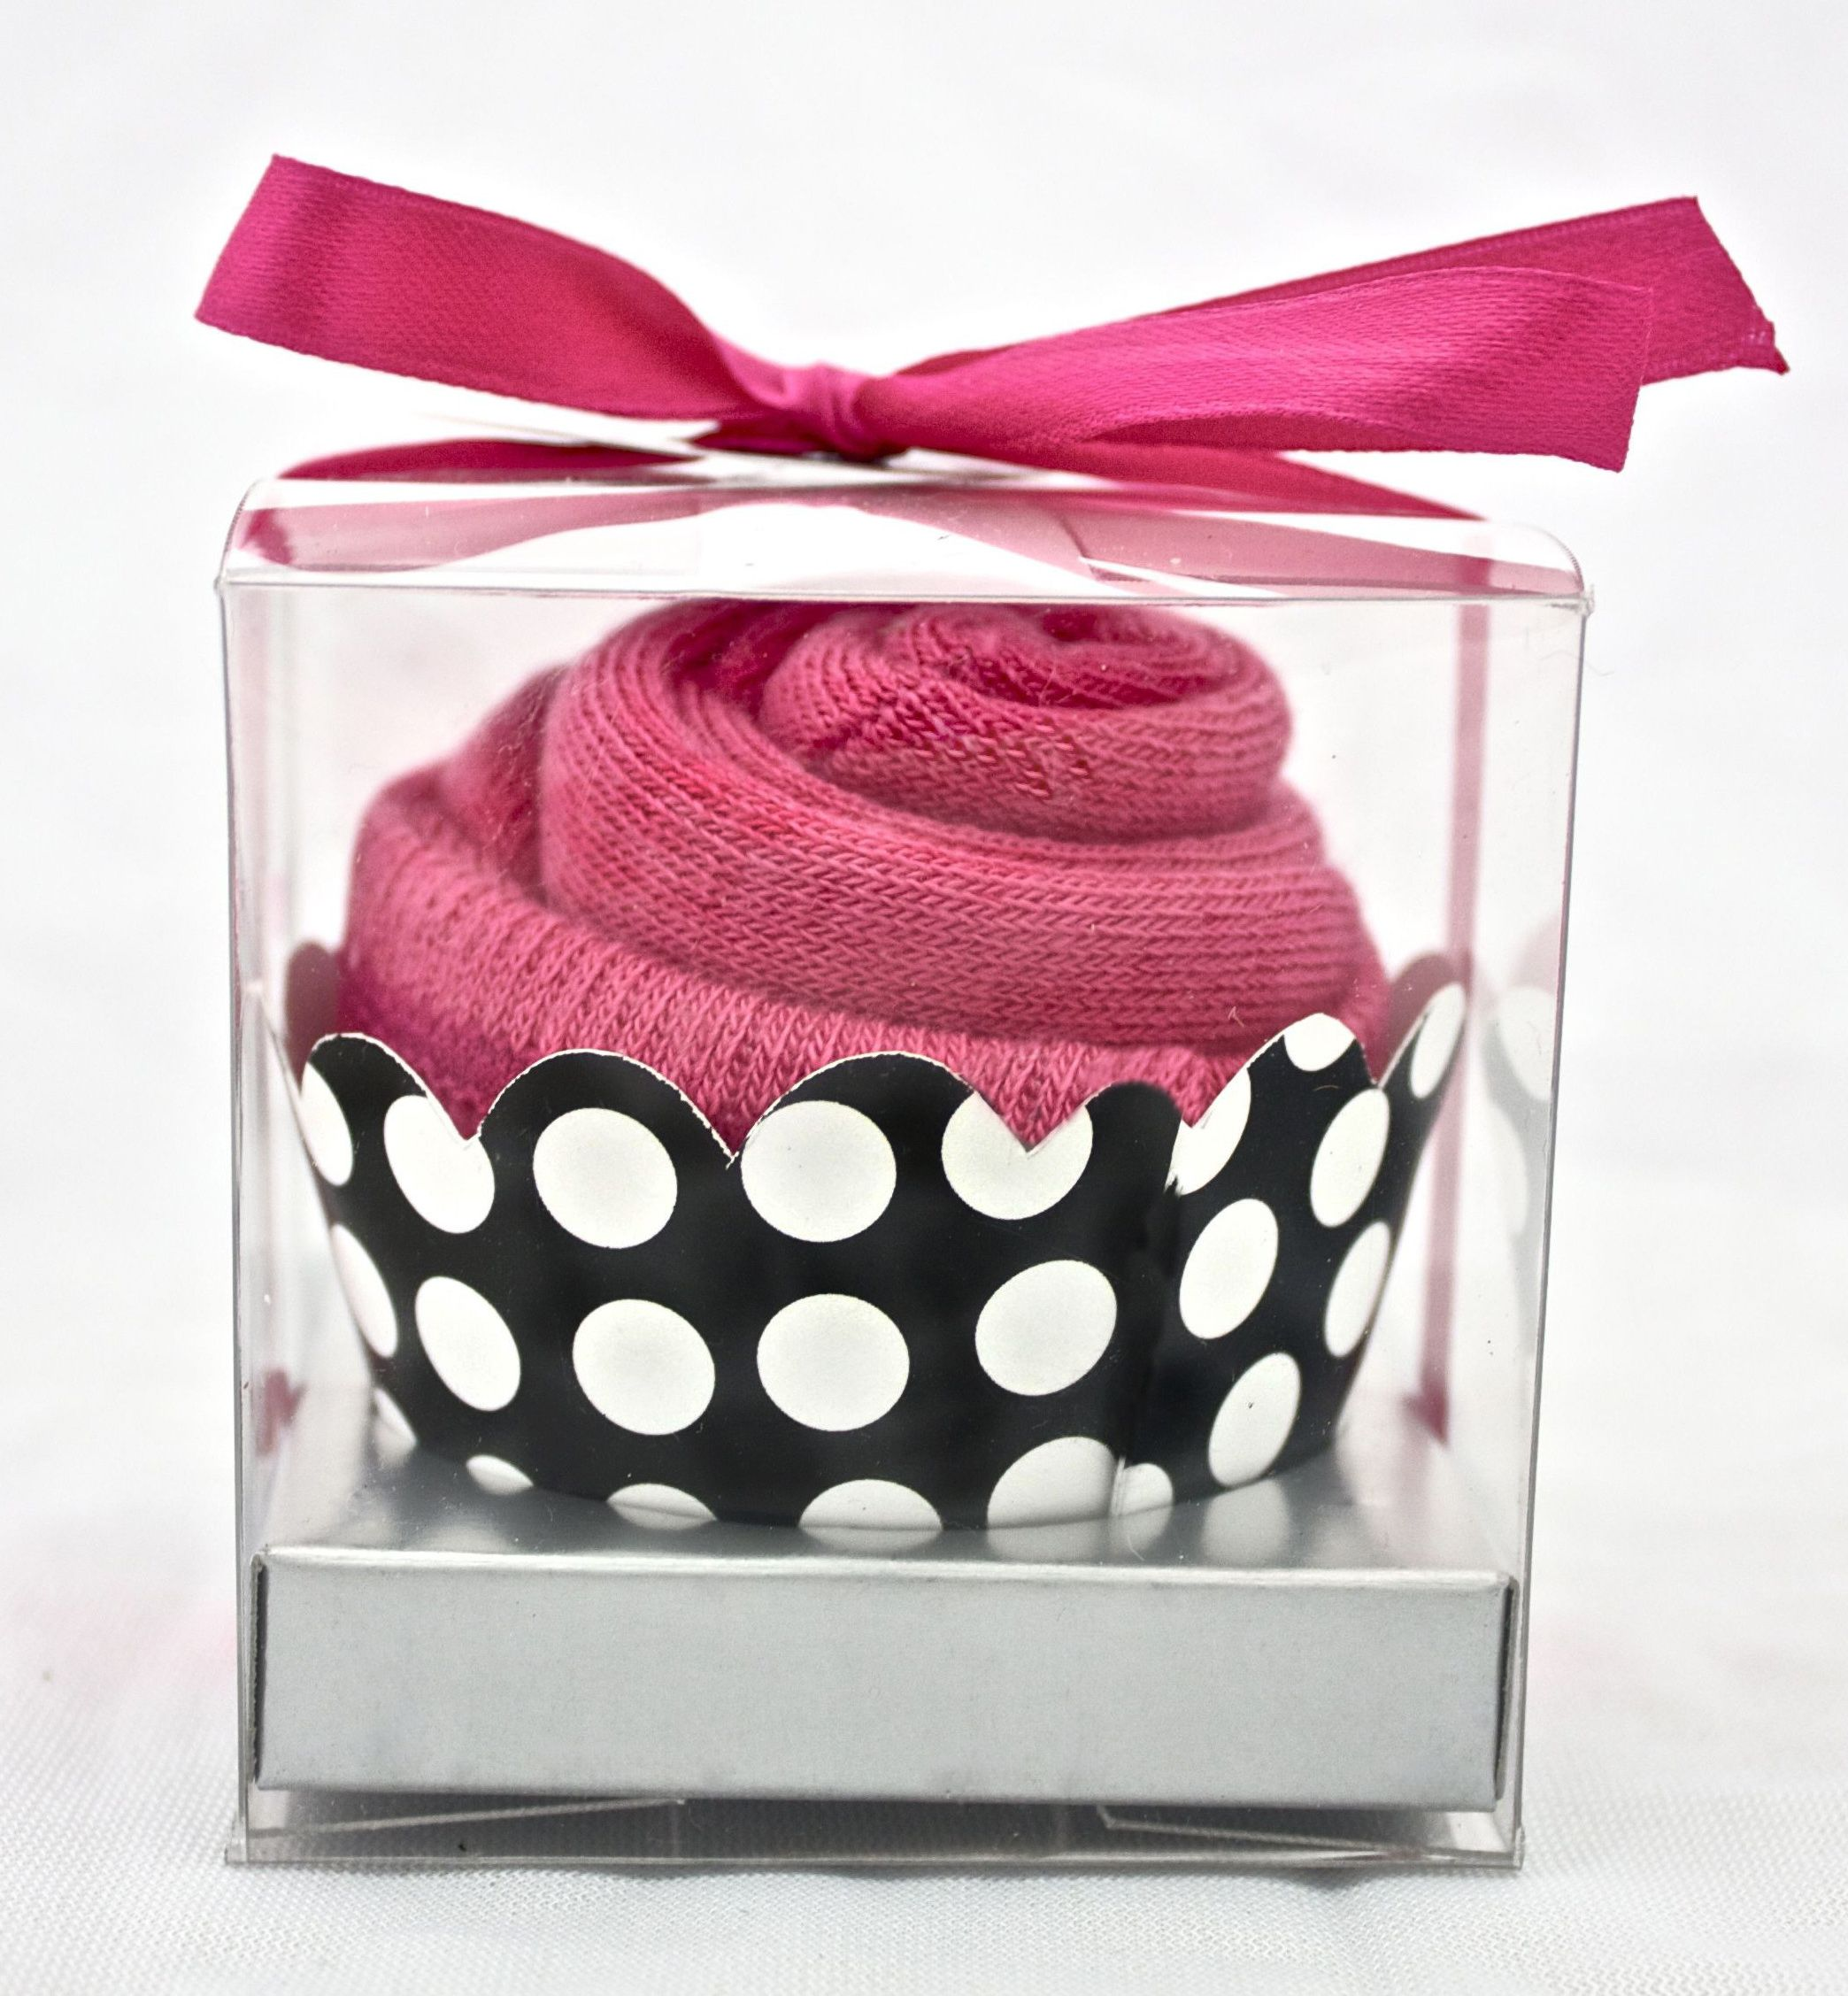 So cute! Adorable cupcake that holds 1 pair of one size fits most ...